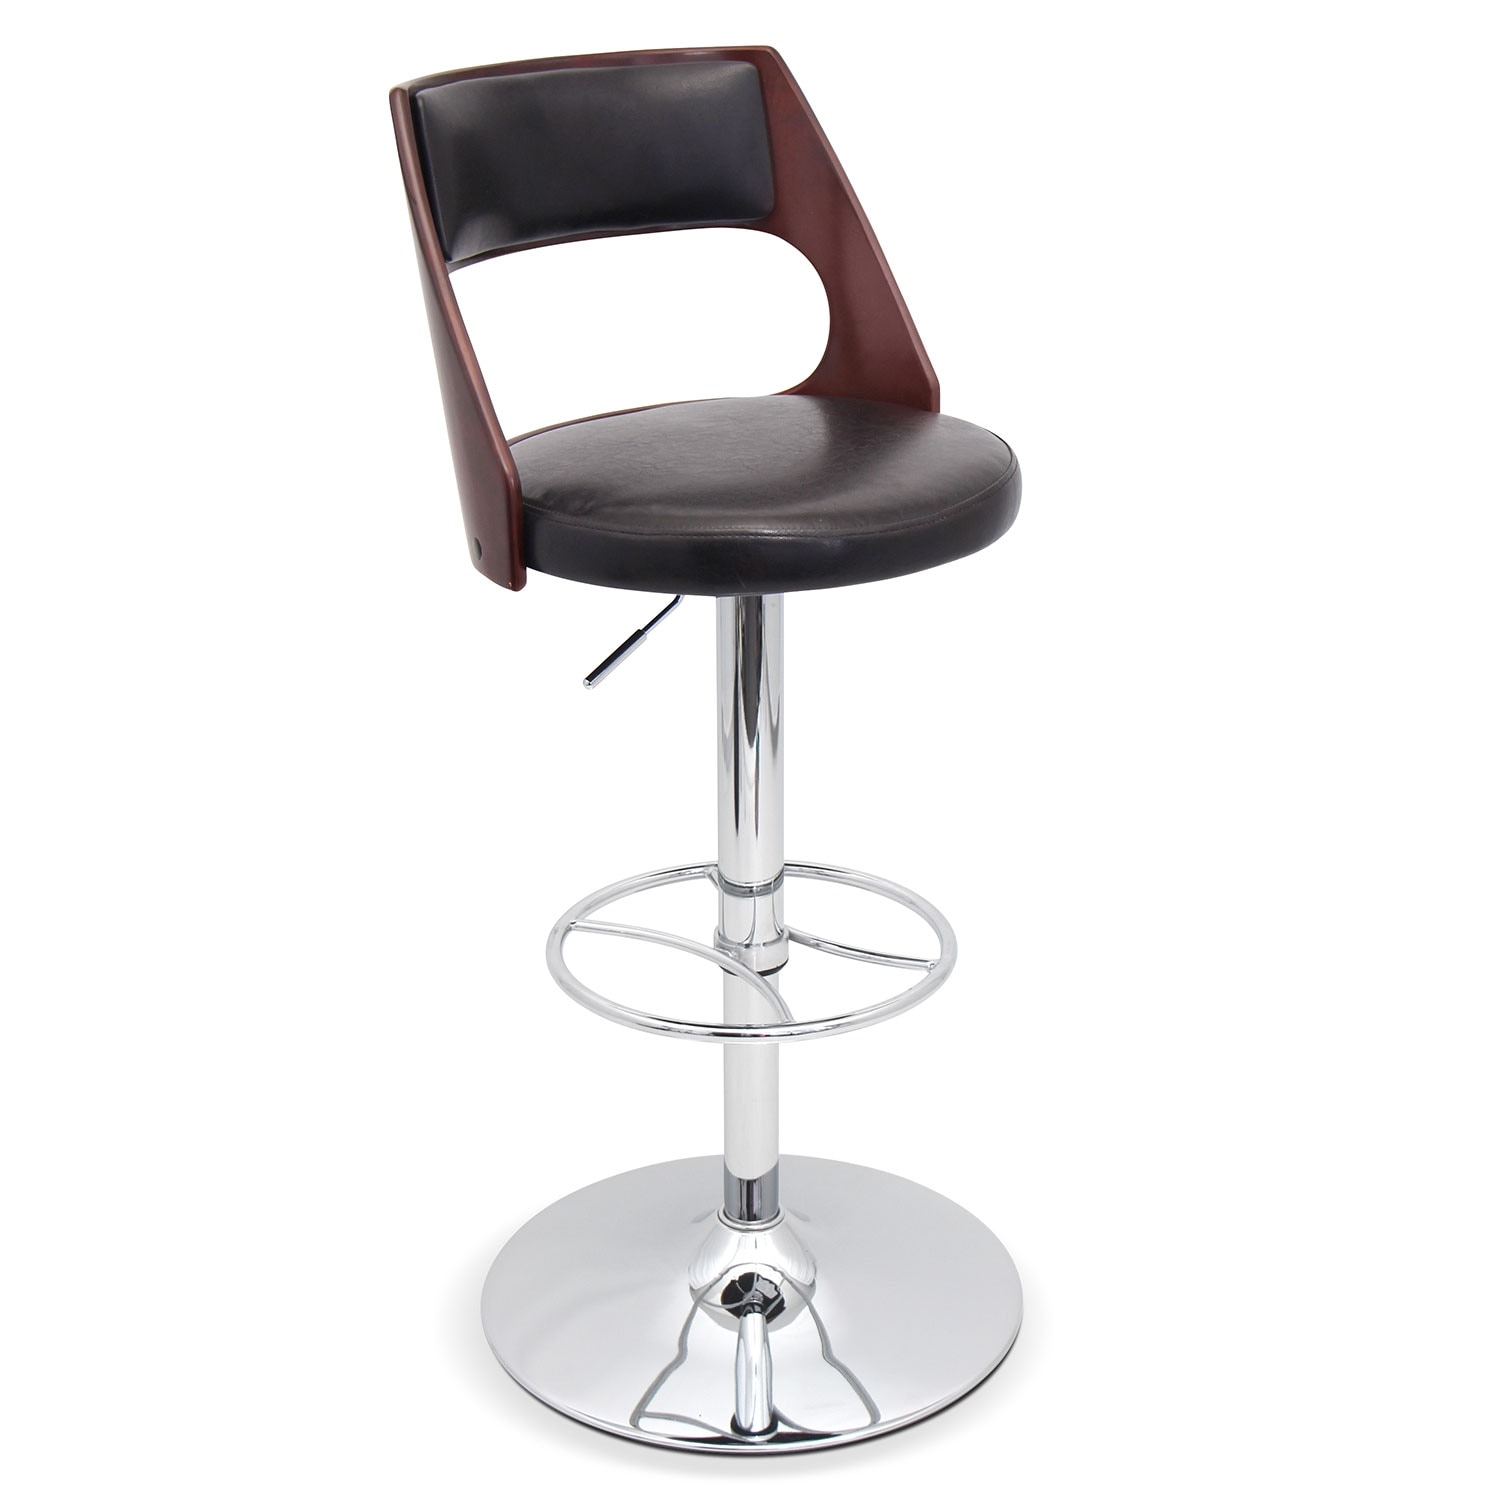 Dining Room Furniture - Palermo Adjustable Barstool - Brown